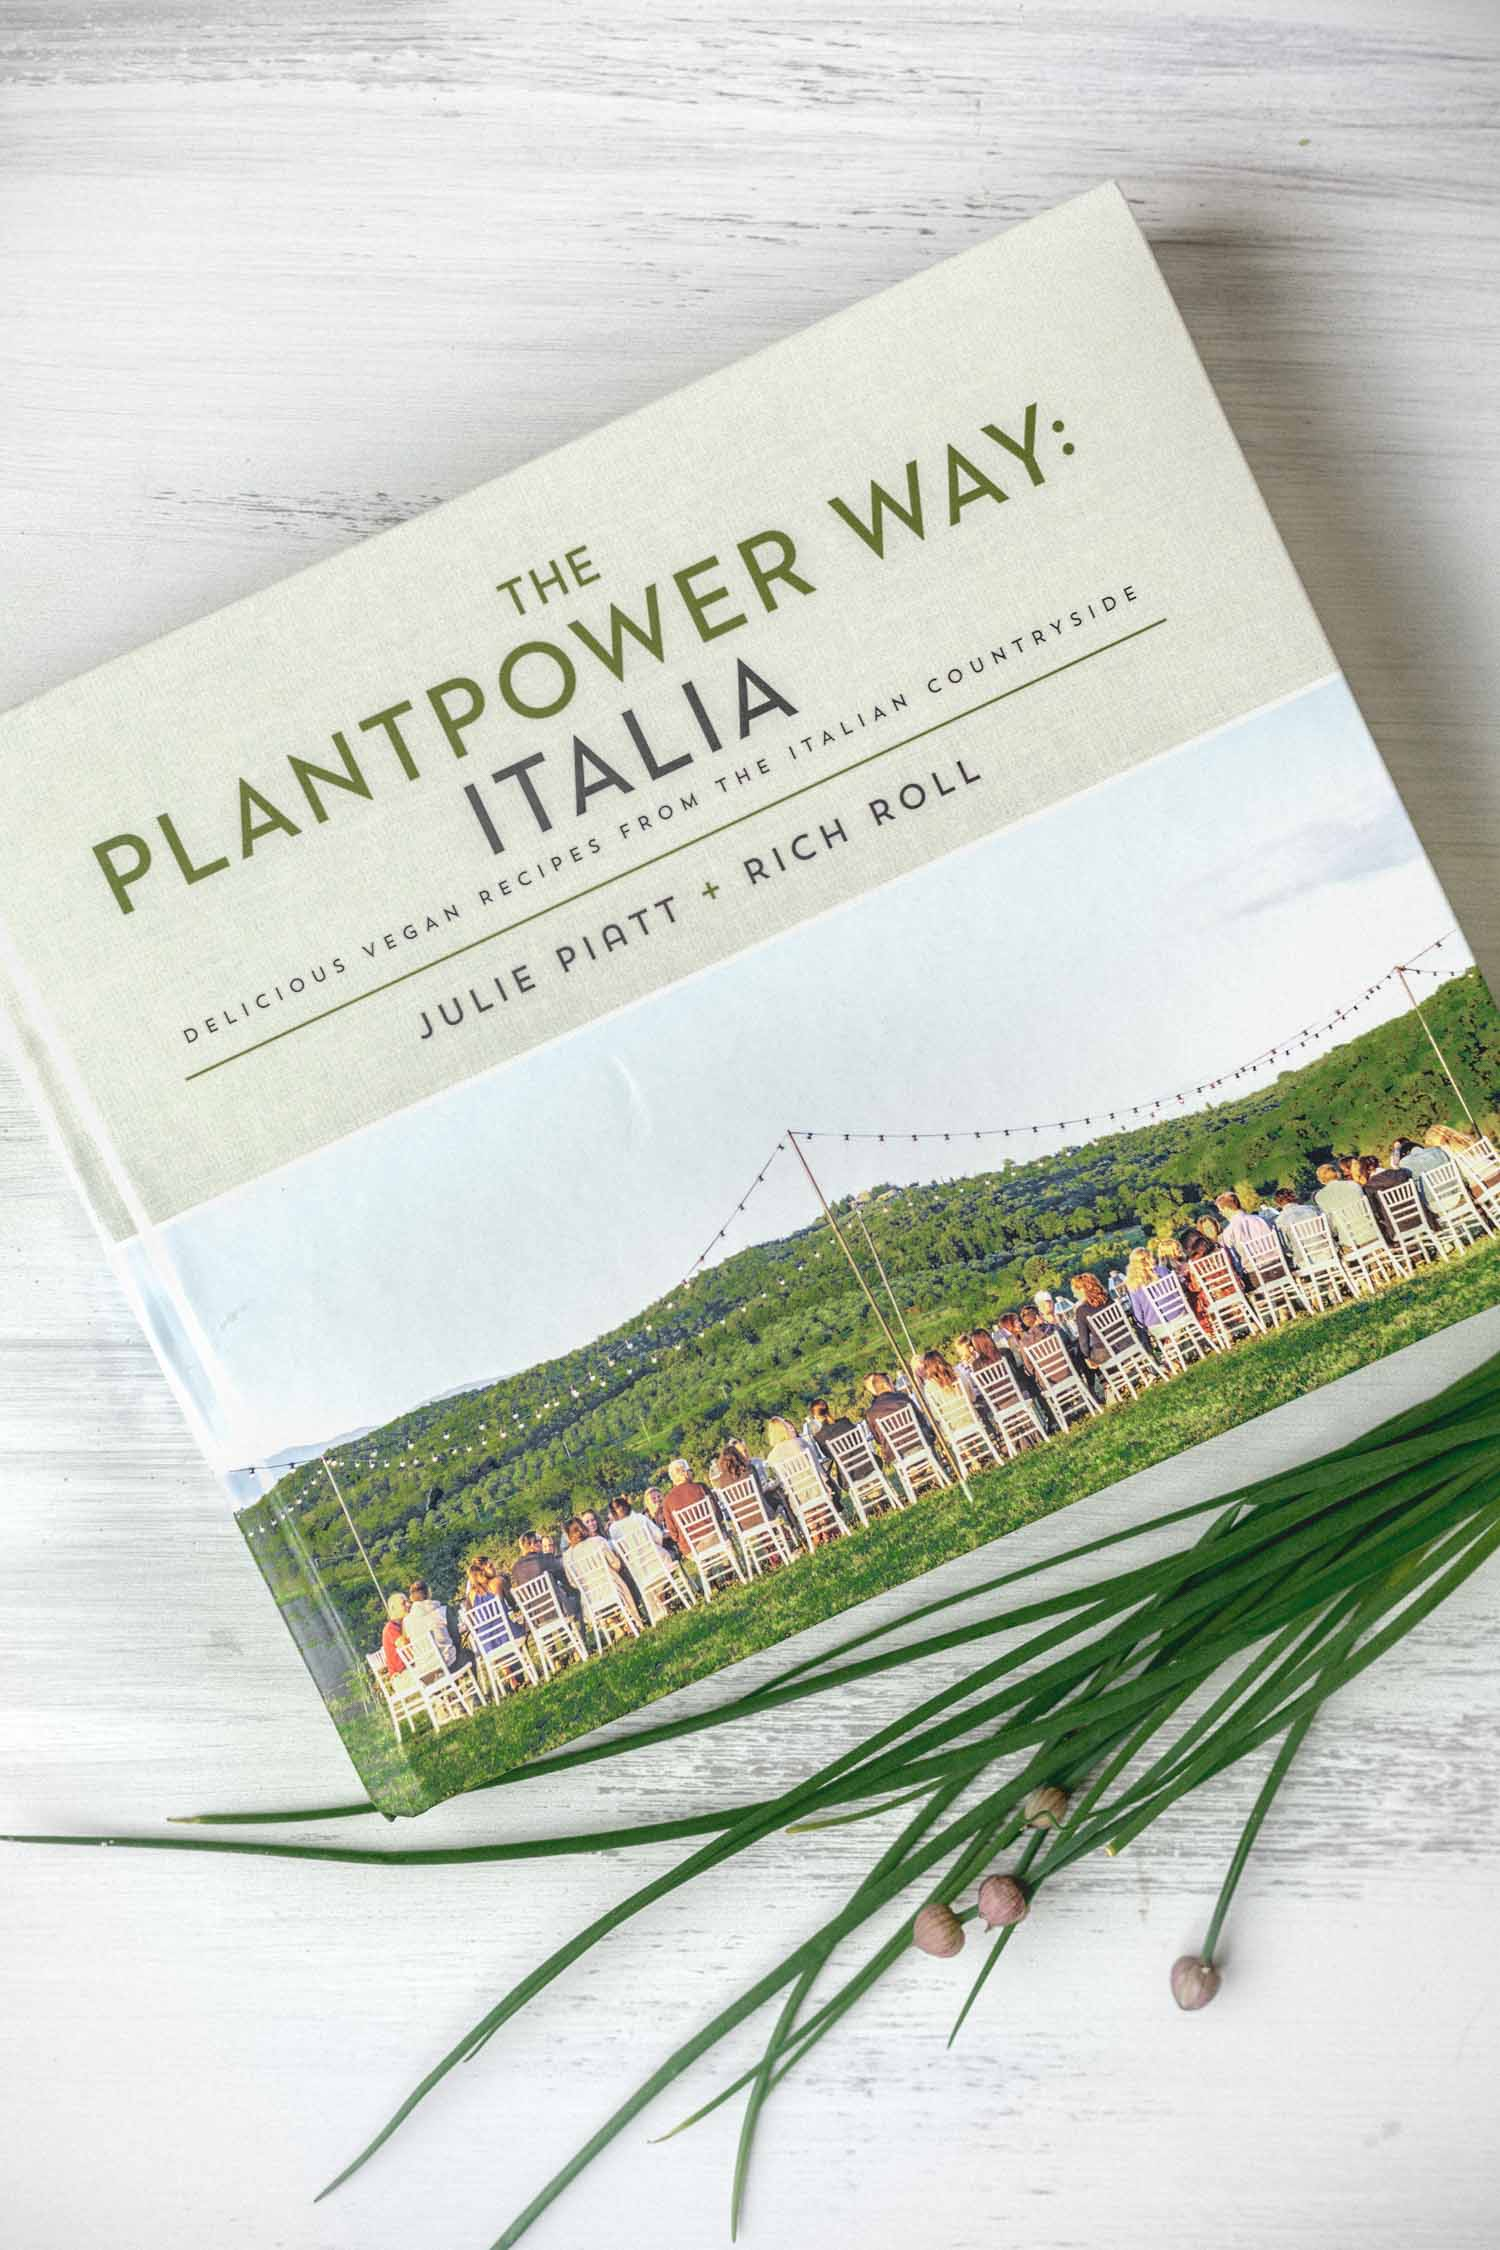 The Plantpower Way: Italia Cookbook  by Julie Piatt and Rich Roll